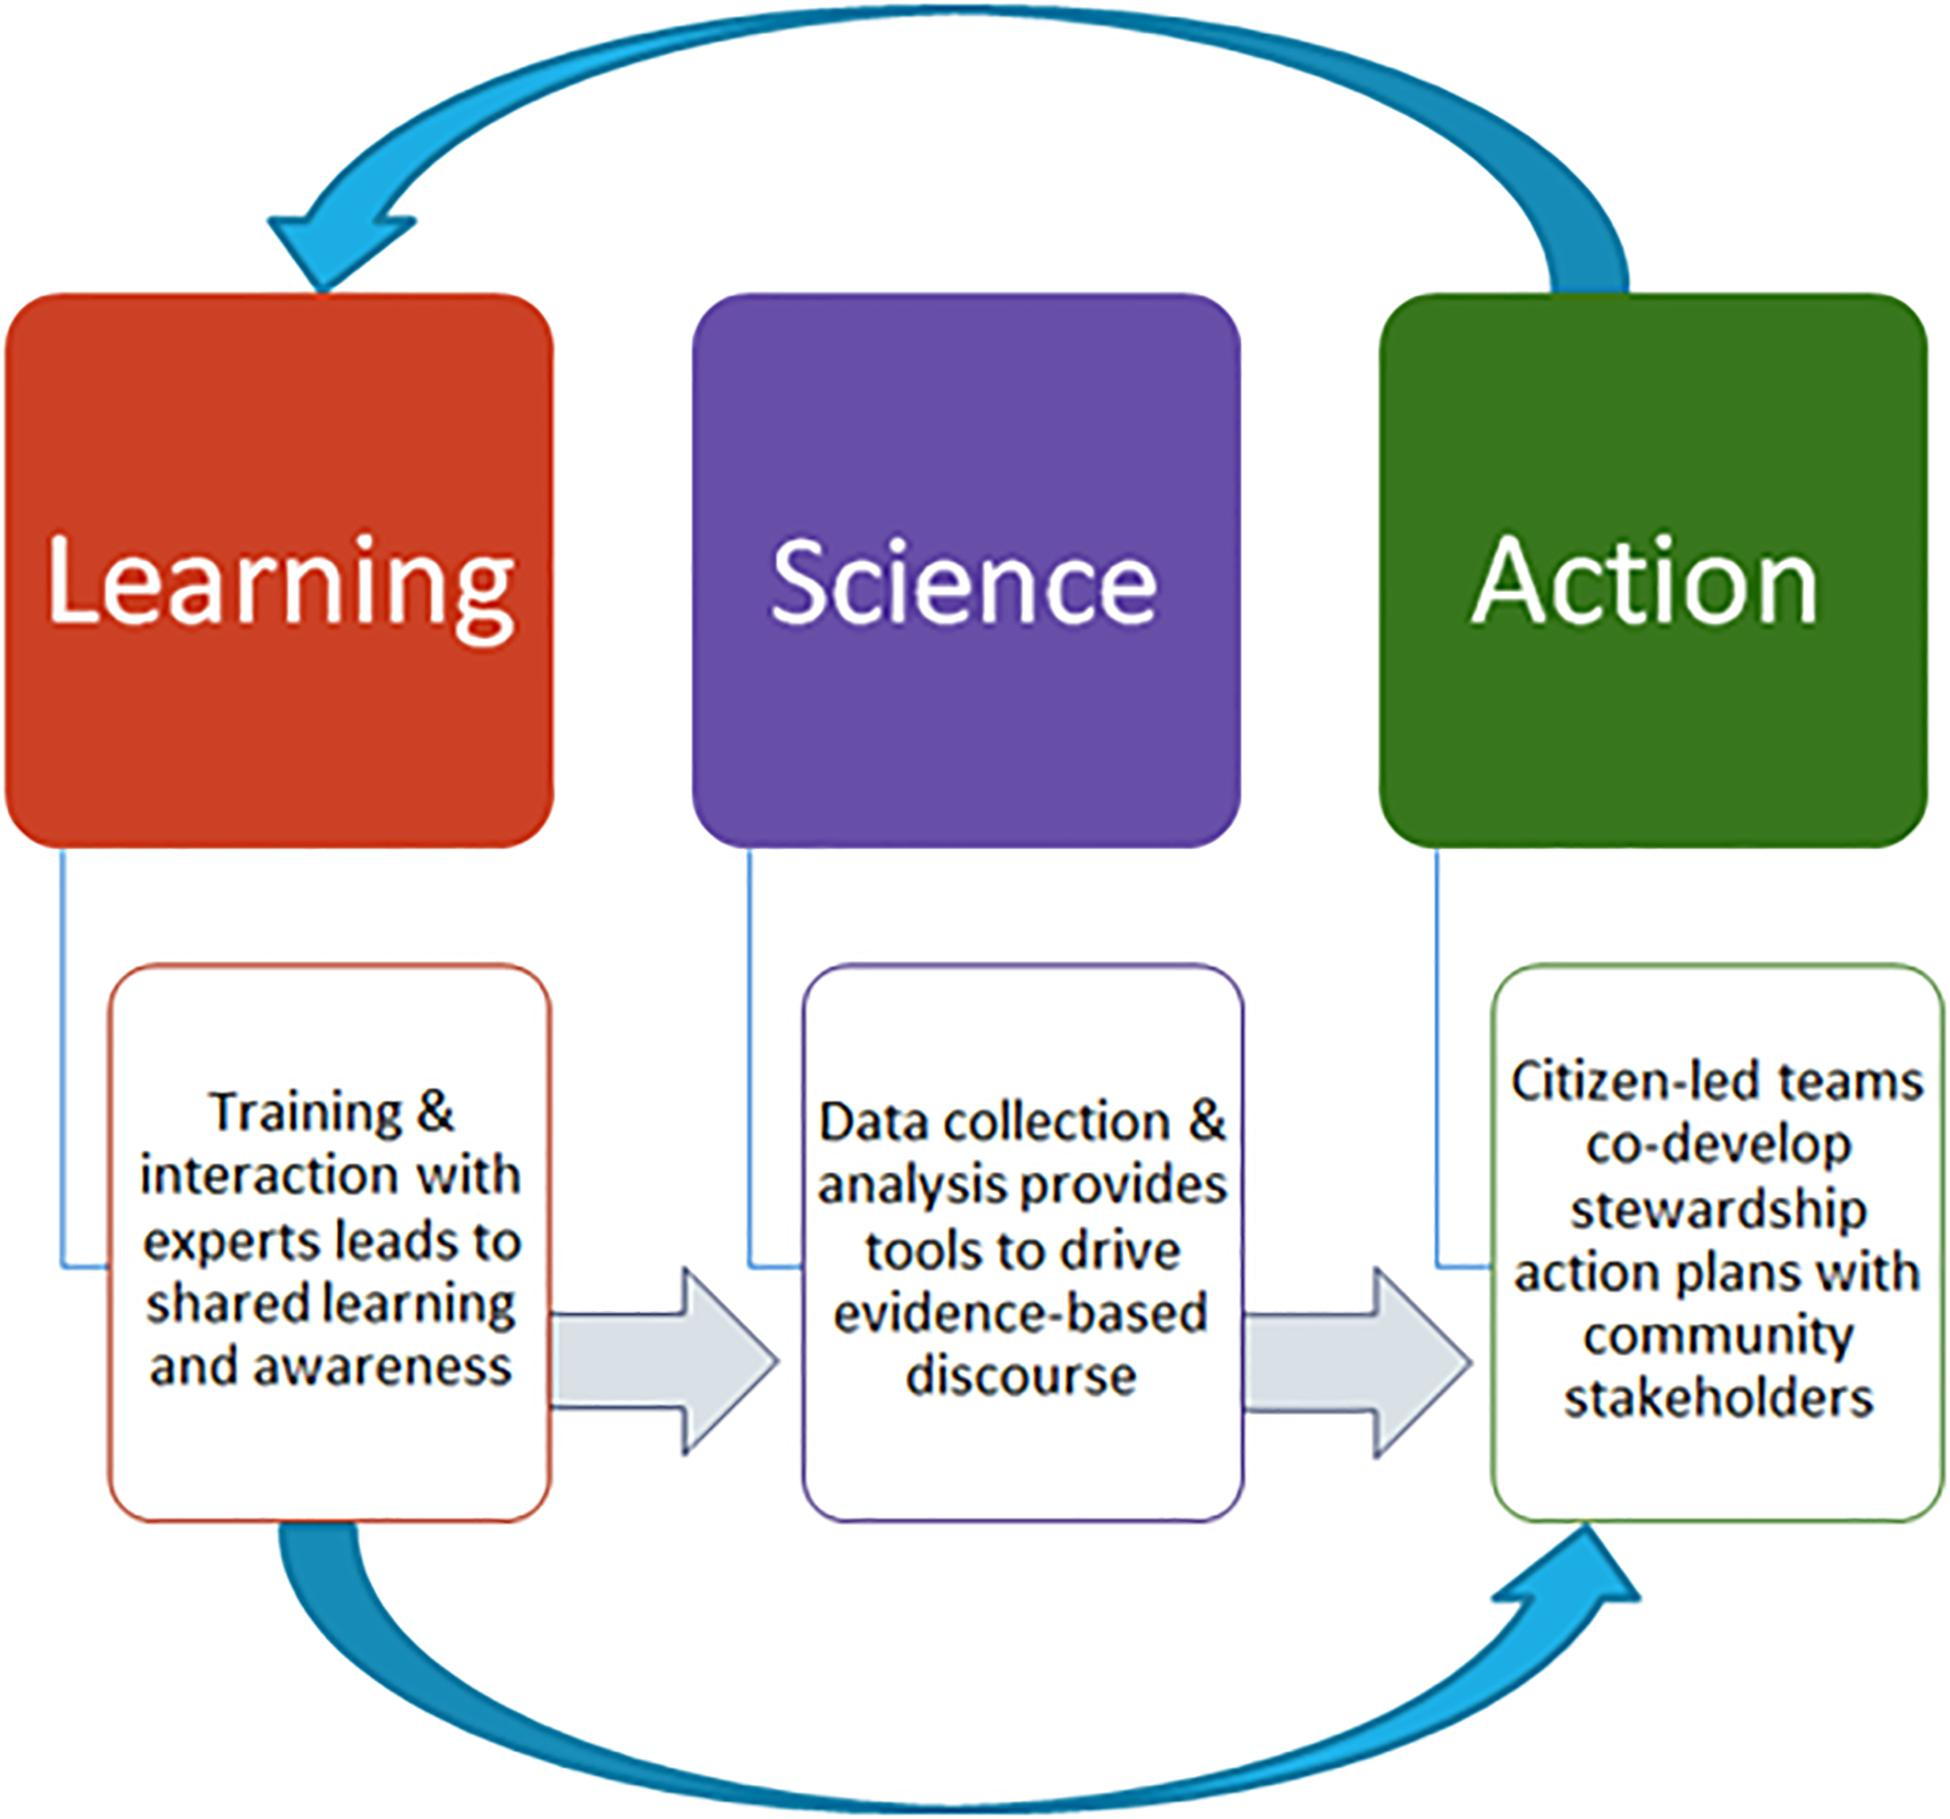 Model for F4R - Learning, Science, Action